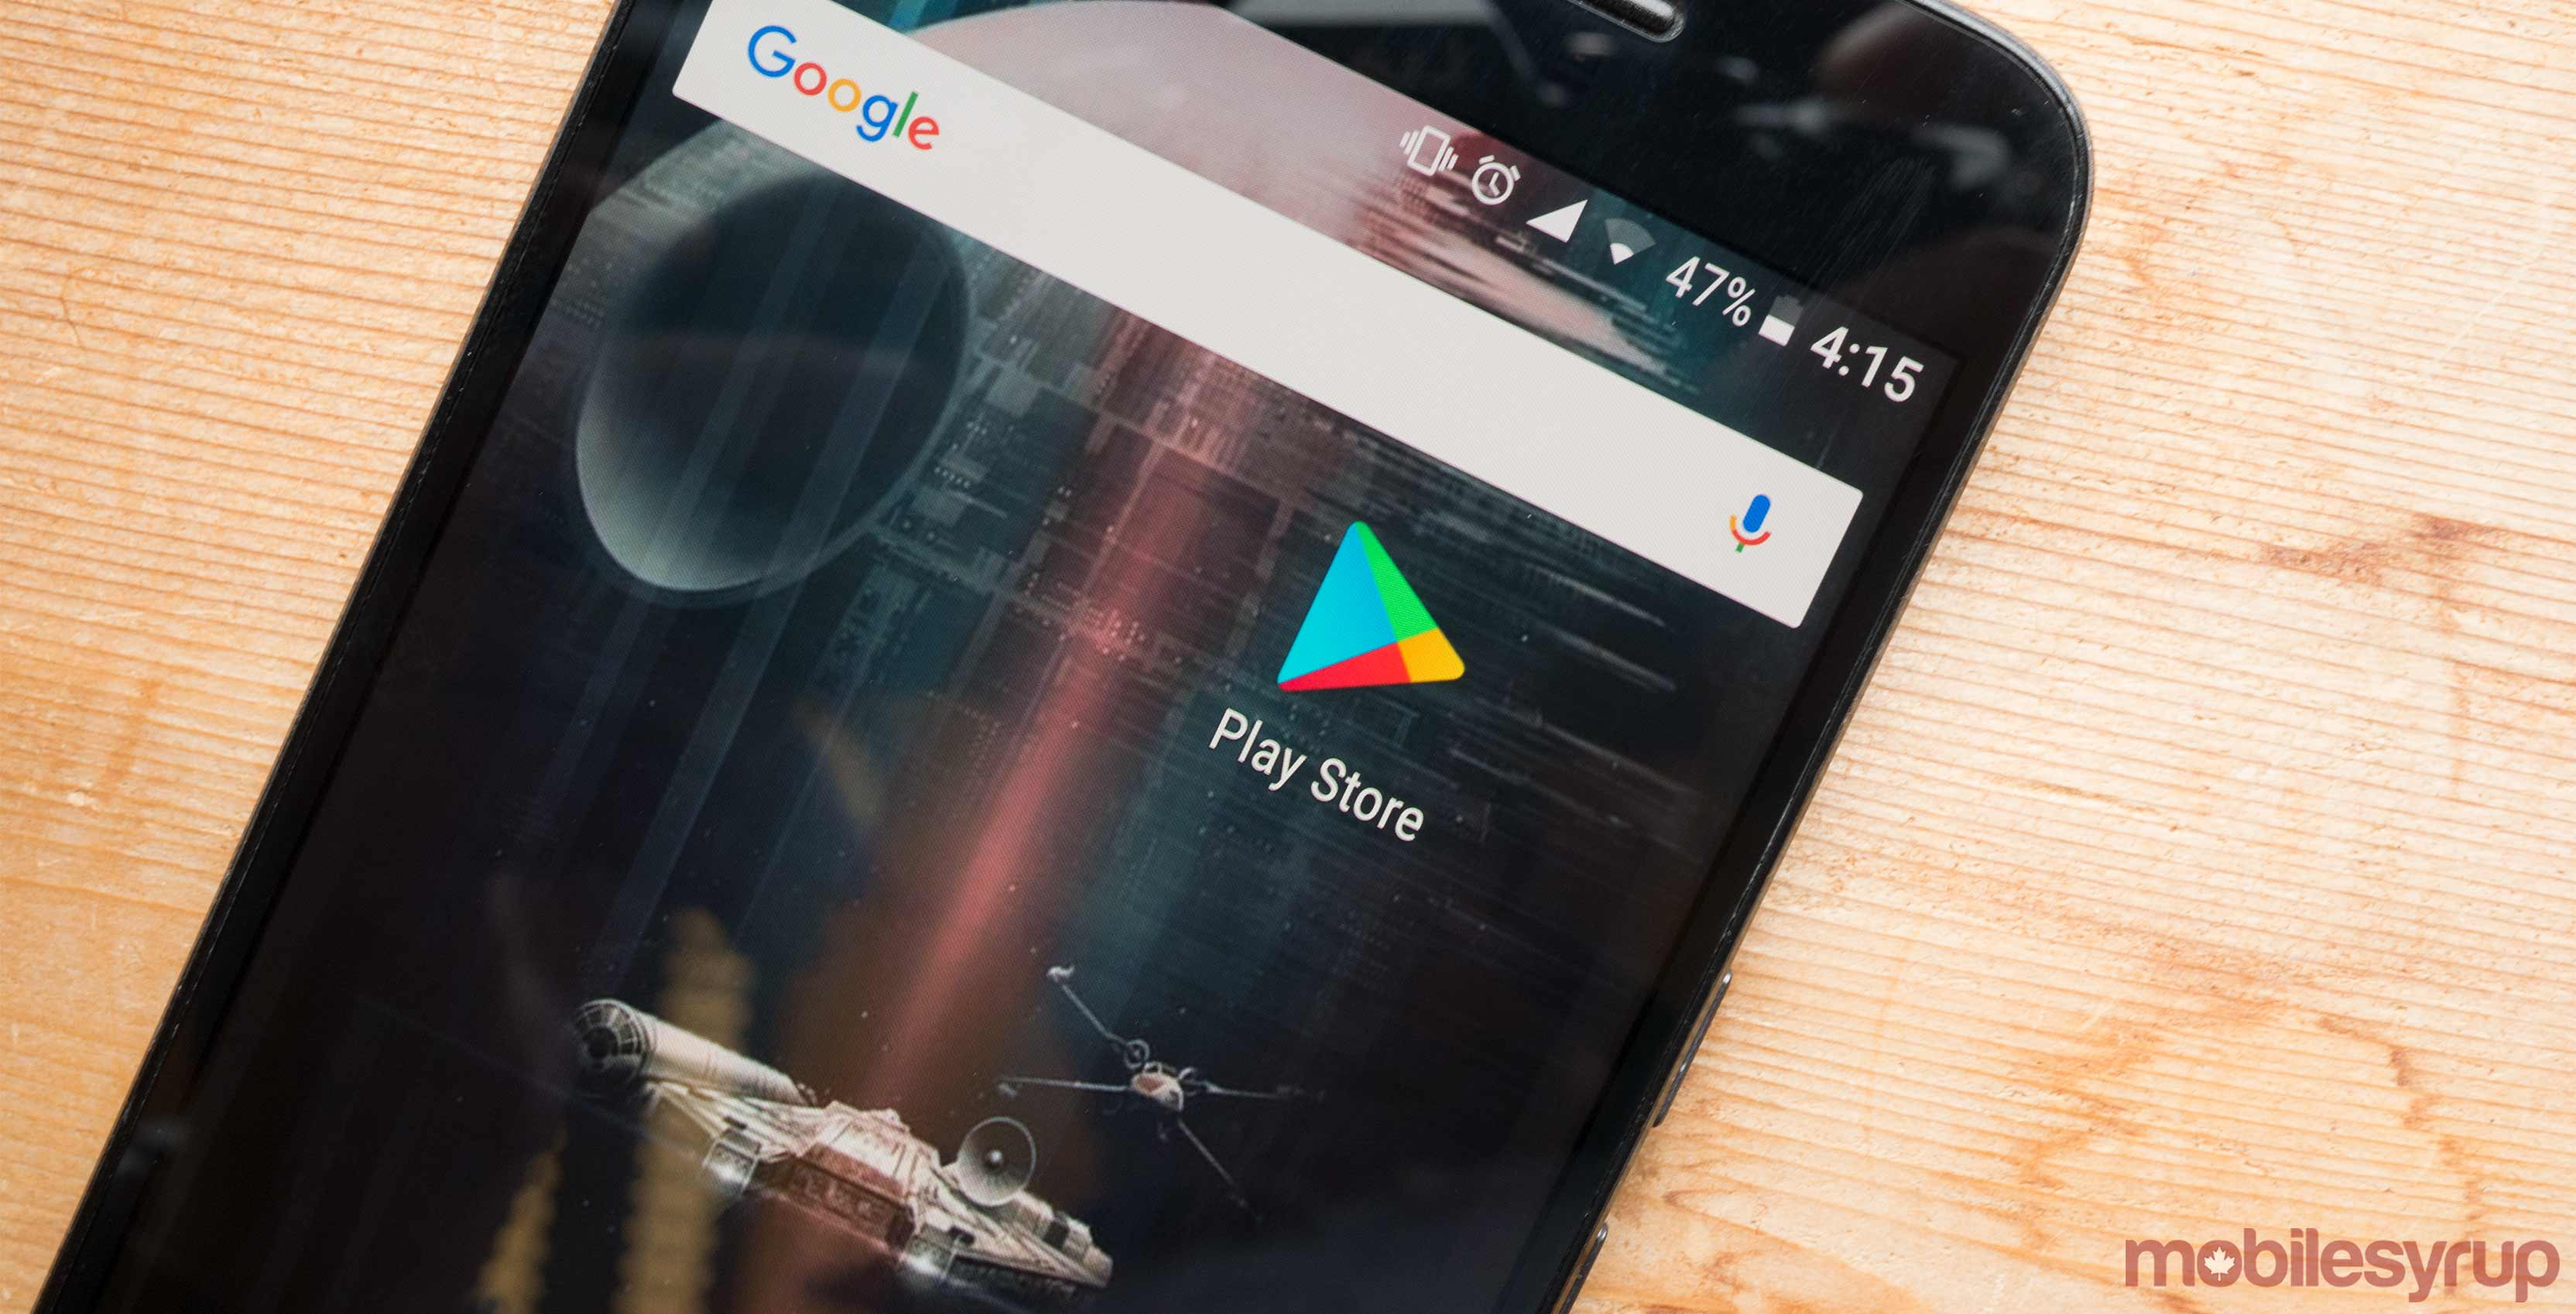 Google Play Store icon on phone